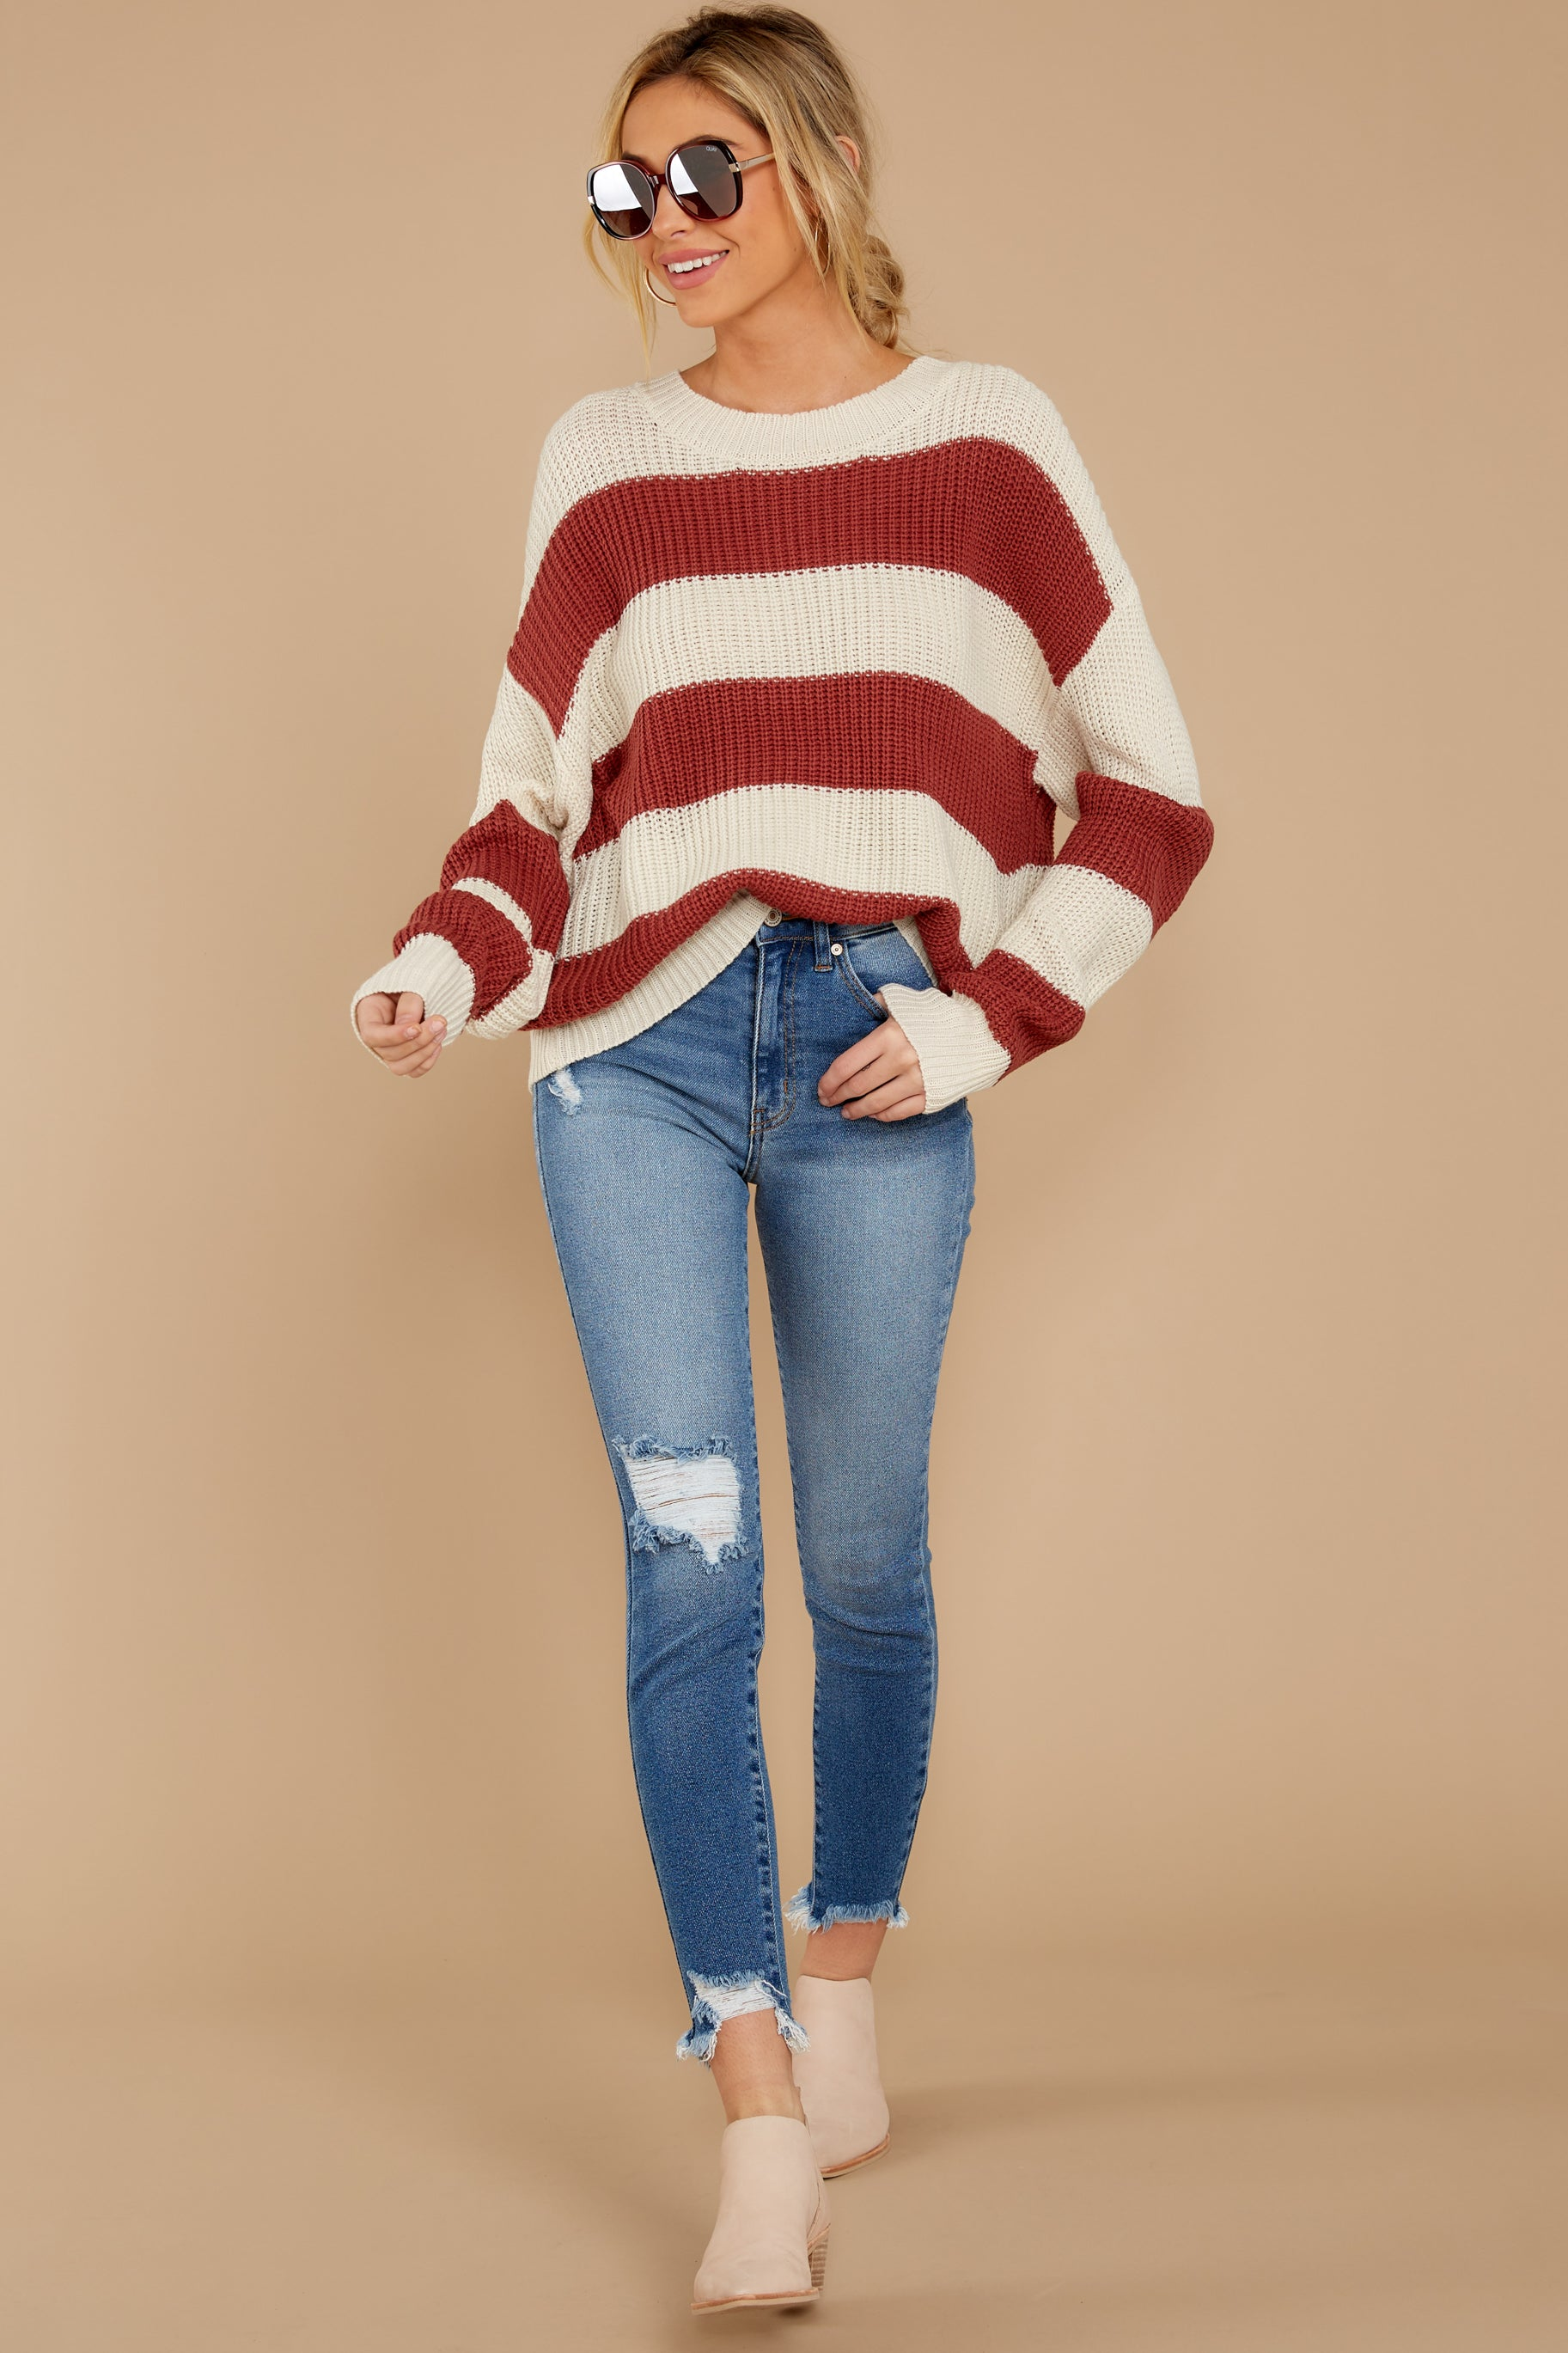 2 From Paris To Prague Marsala And White Stripe Sweater at reddressboutique.com